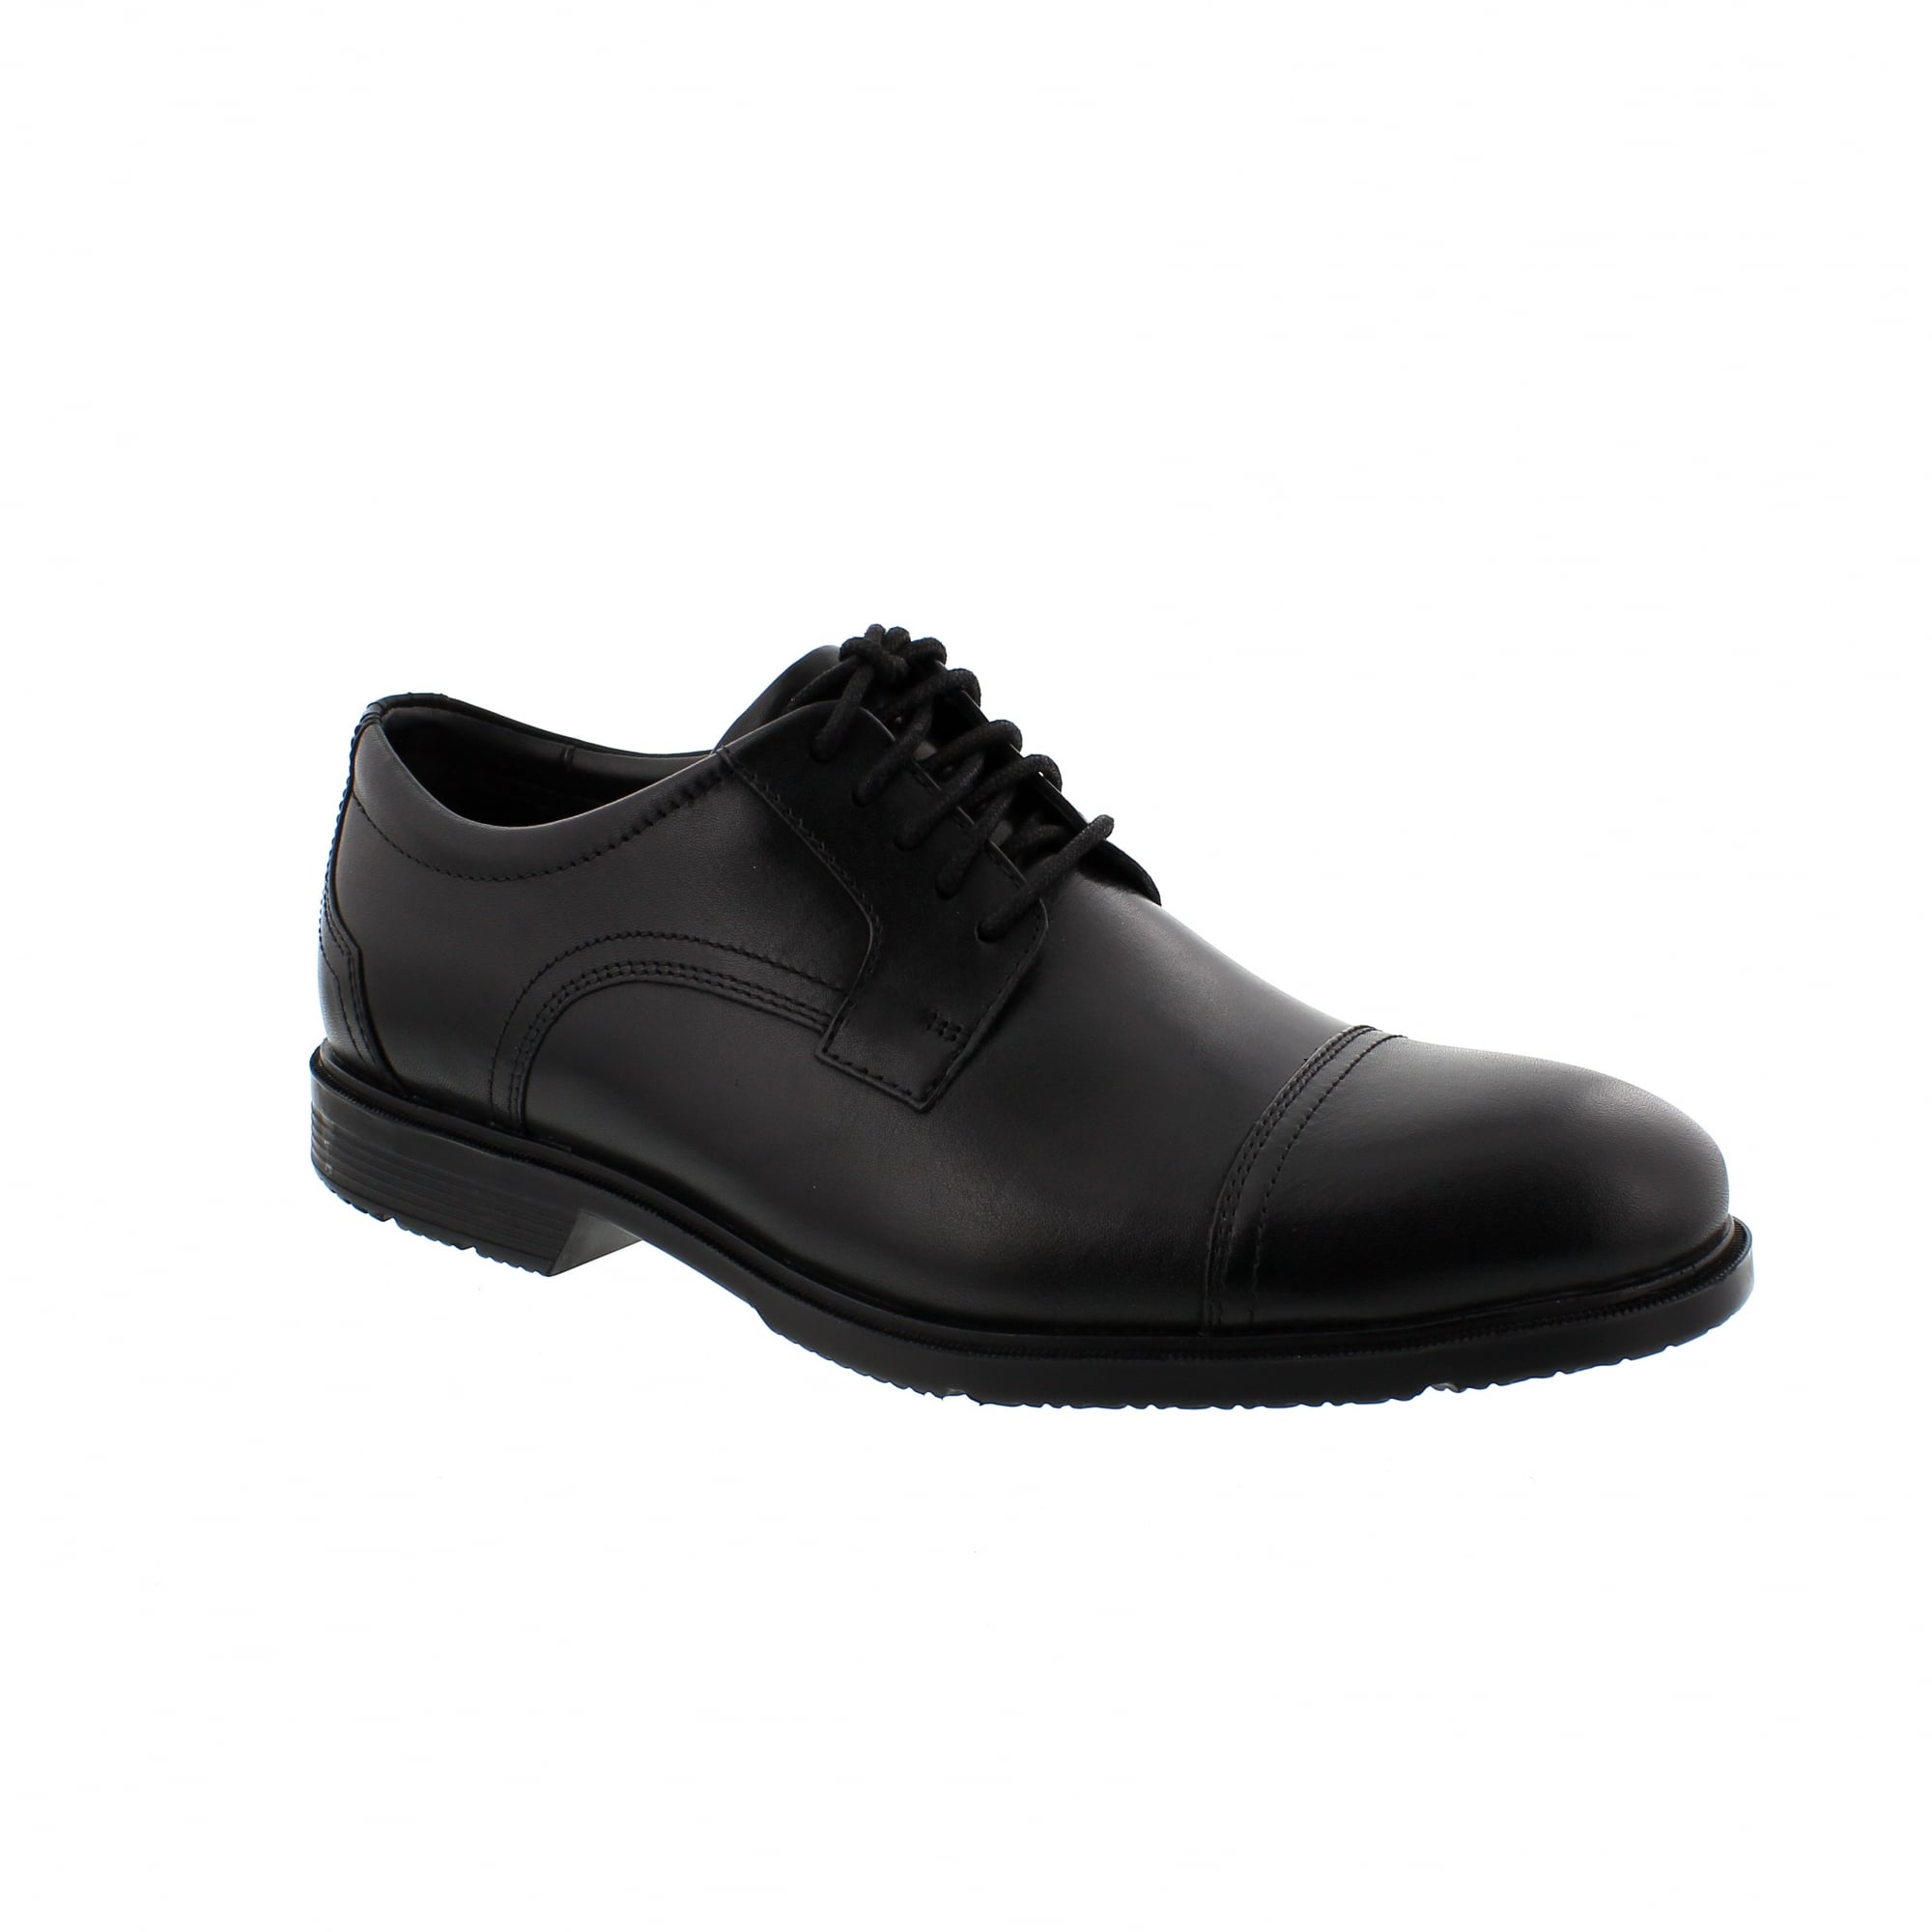 Mens City Smart Cap Toe Formal Rockport owXwe